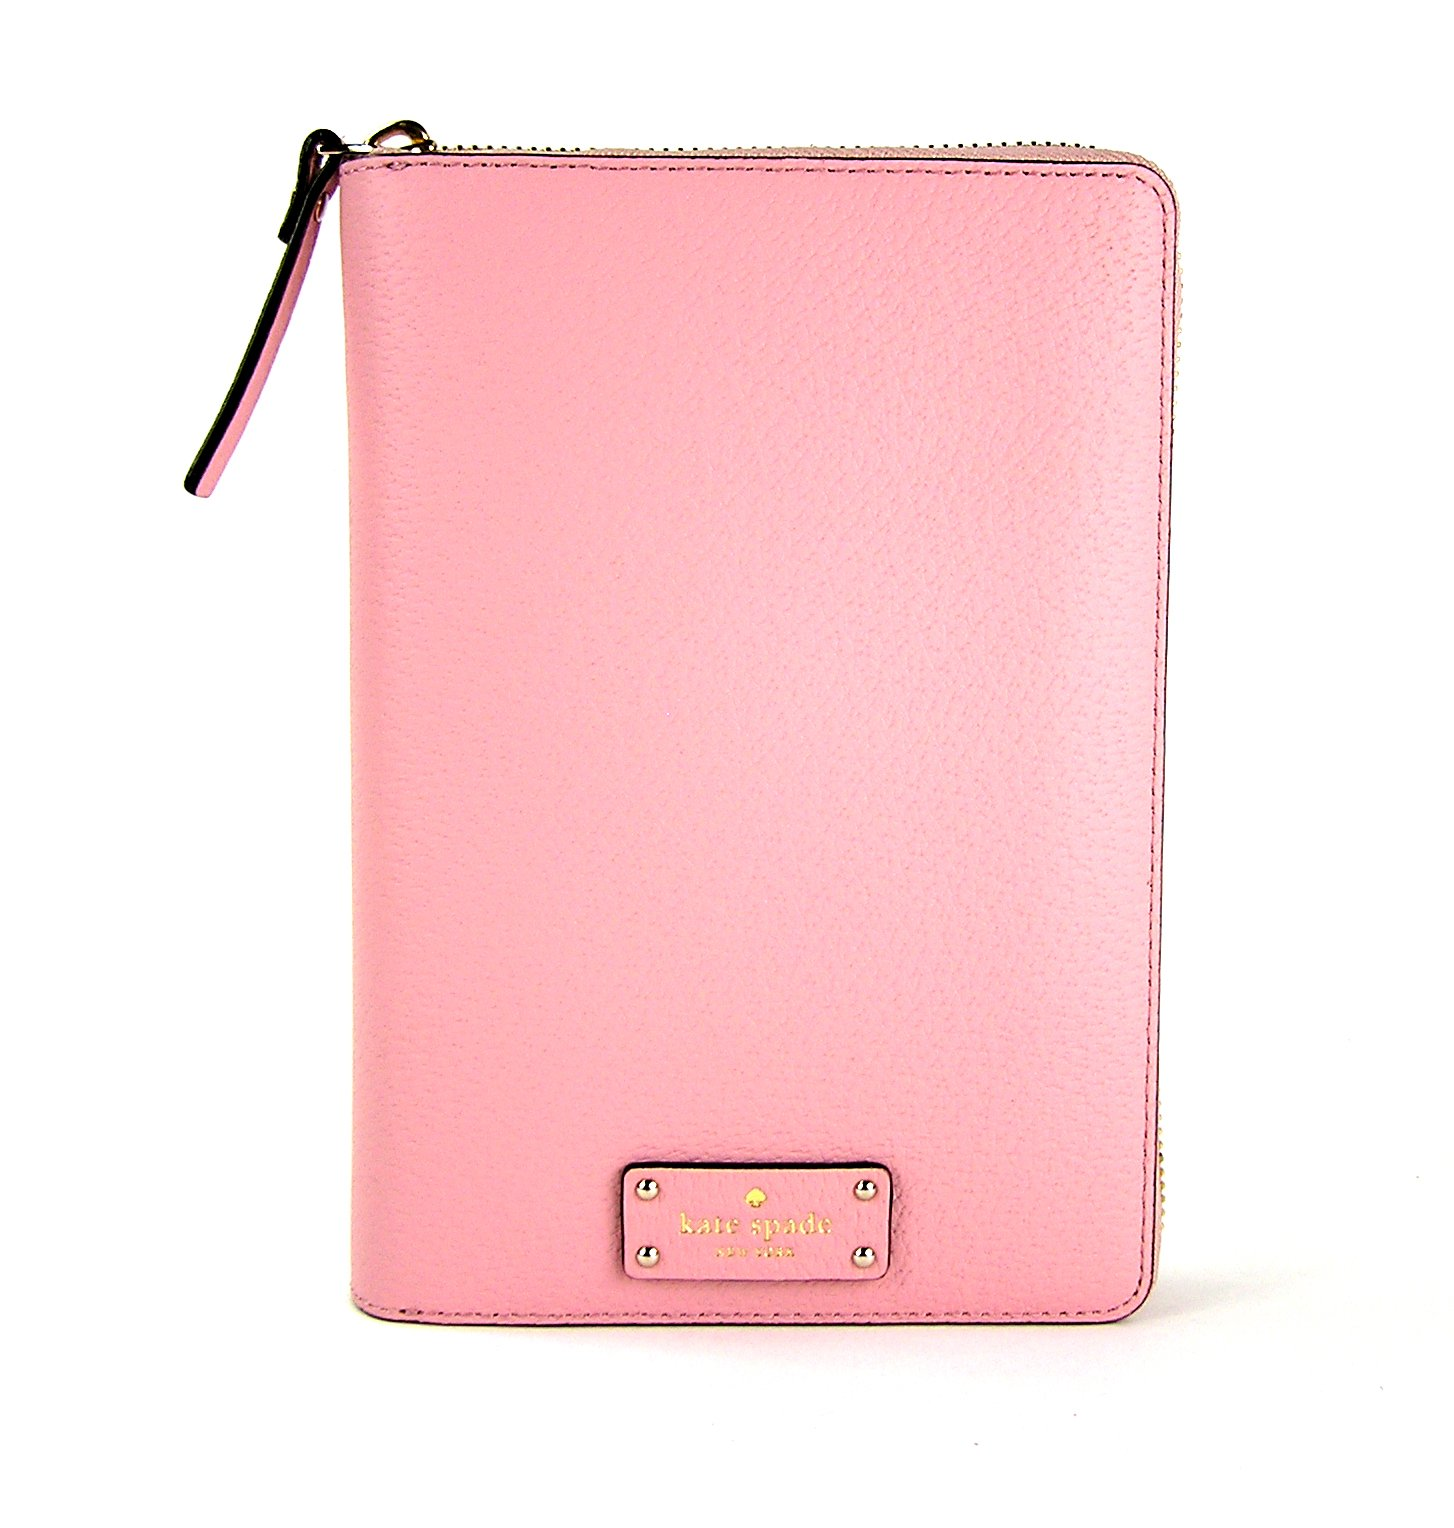 Kate Spade Zip Around Personal Organizer Grove Street Pink Bonnet